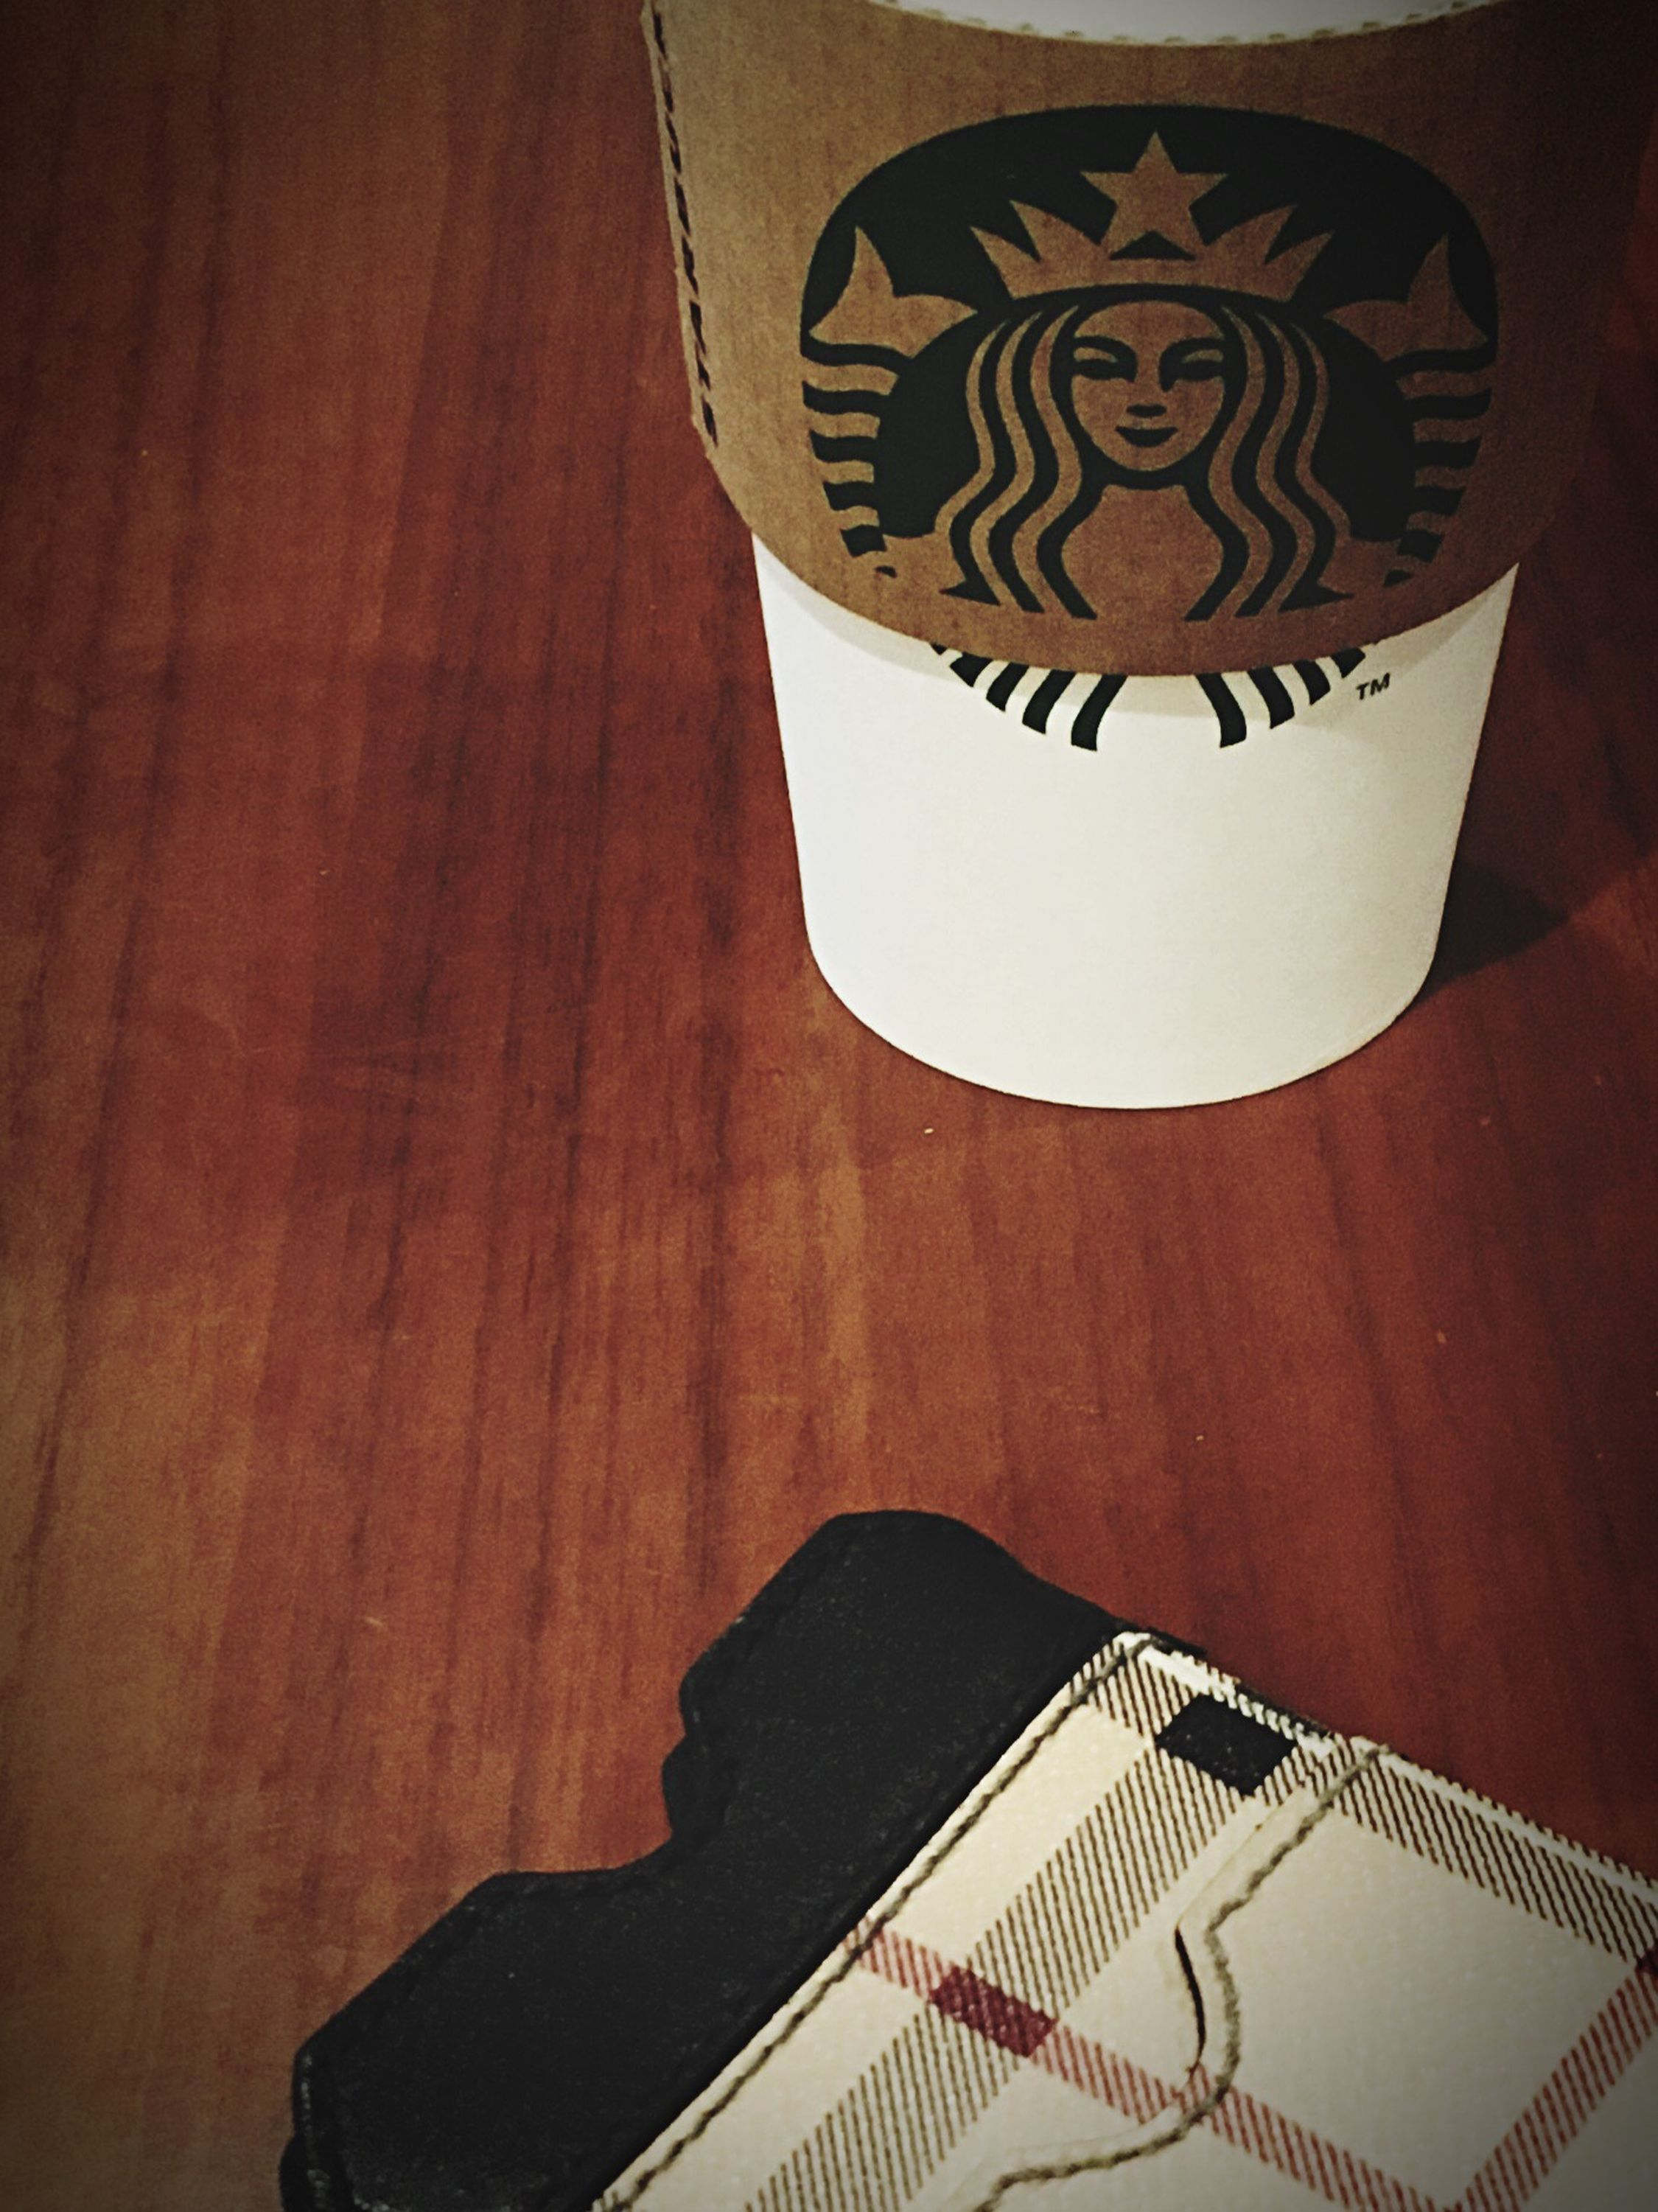 Starbucks Burberry Offday Relaxing Dayformyself